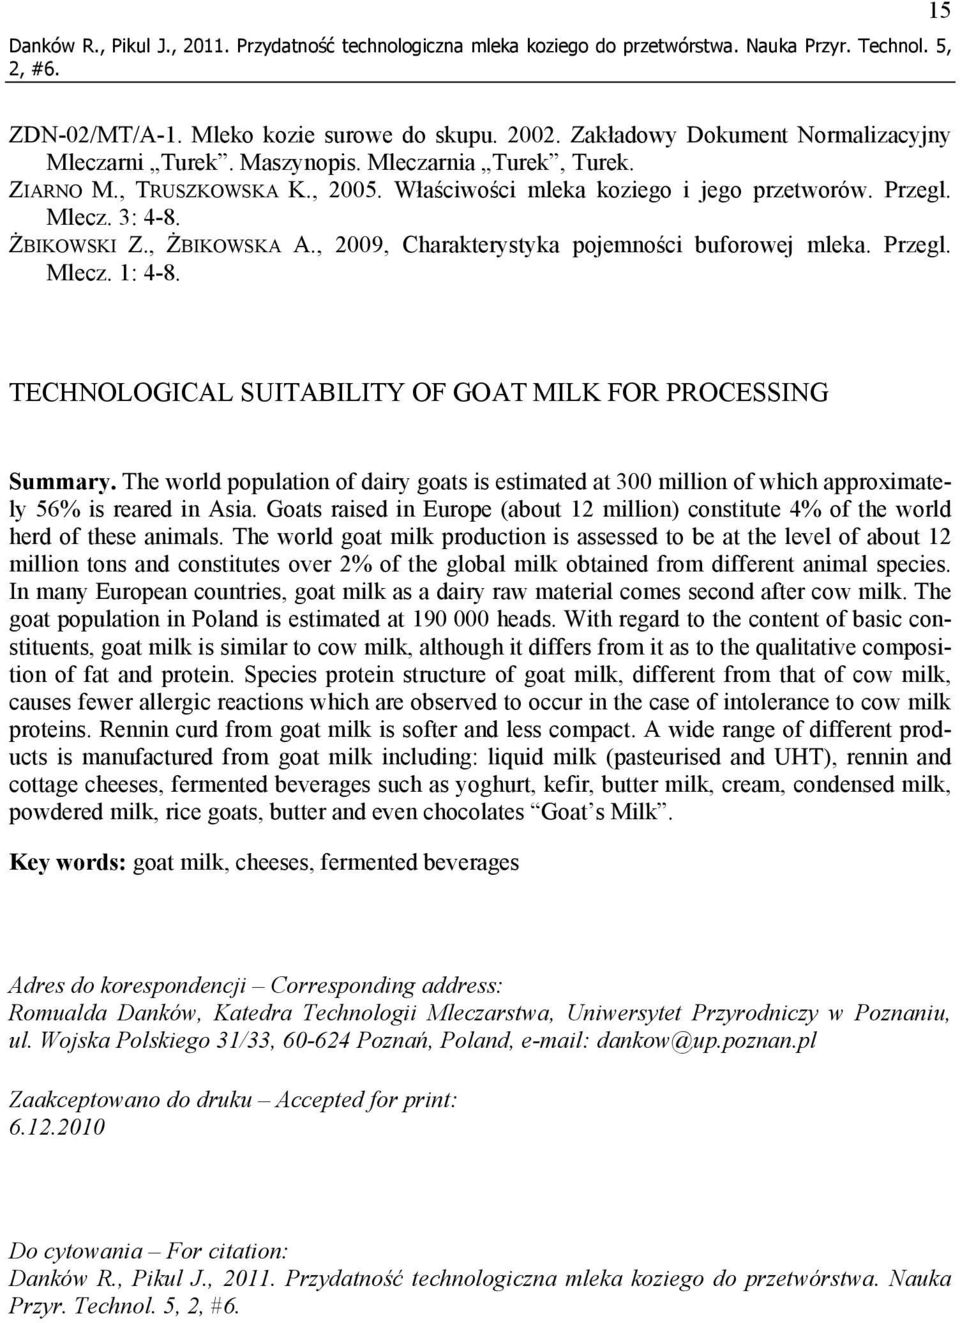 ŻBIKOWSKI Z., ŻBIKOWSKA A., 2009, Charakterystyka pojemności buforowej mleka. Przegl. Mlecz. 1: 4-8. TECHNOLOGICAL SUITABILITY OF GOAT MILK FOR PROCESSING Summary.